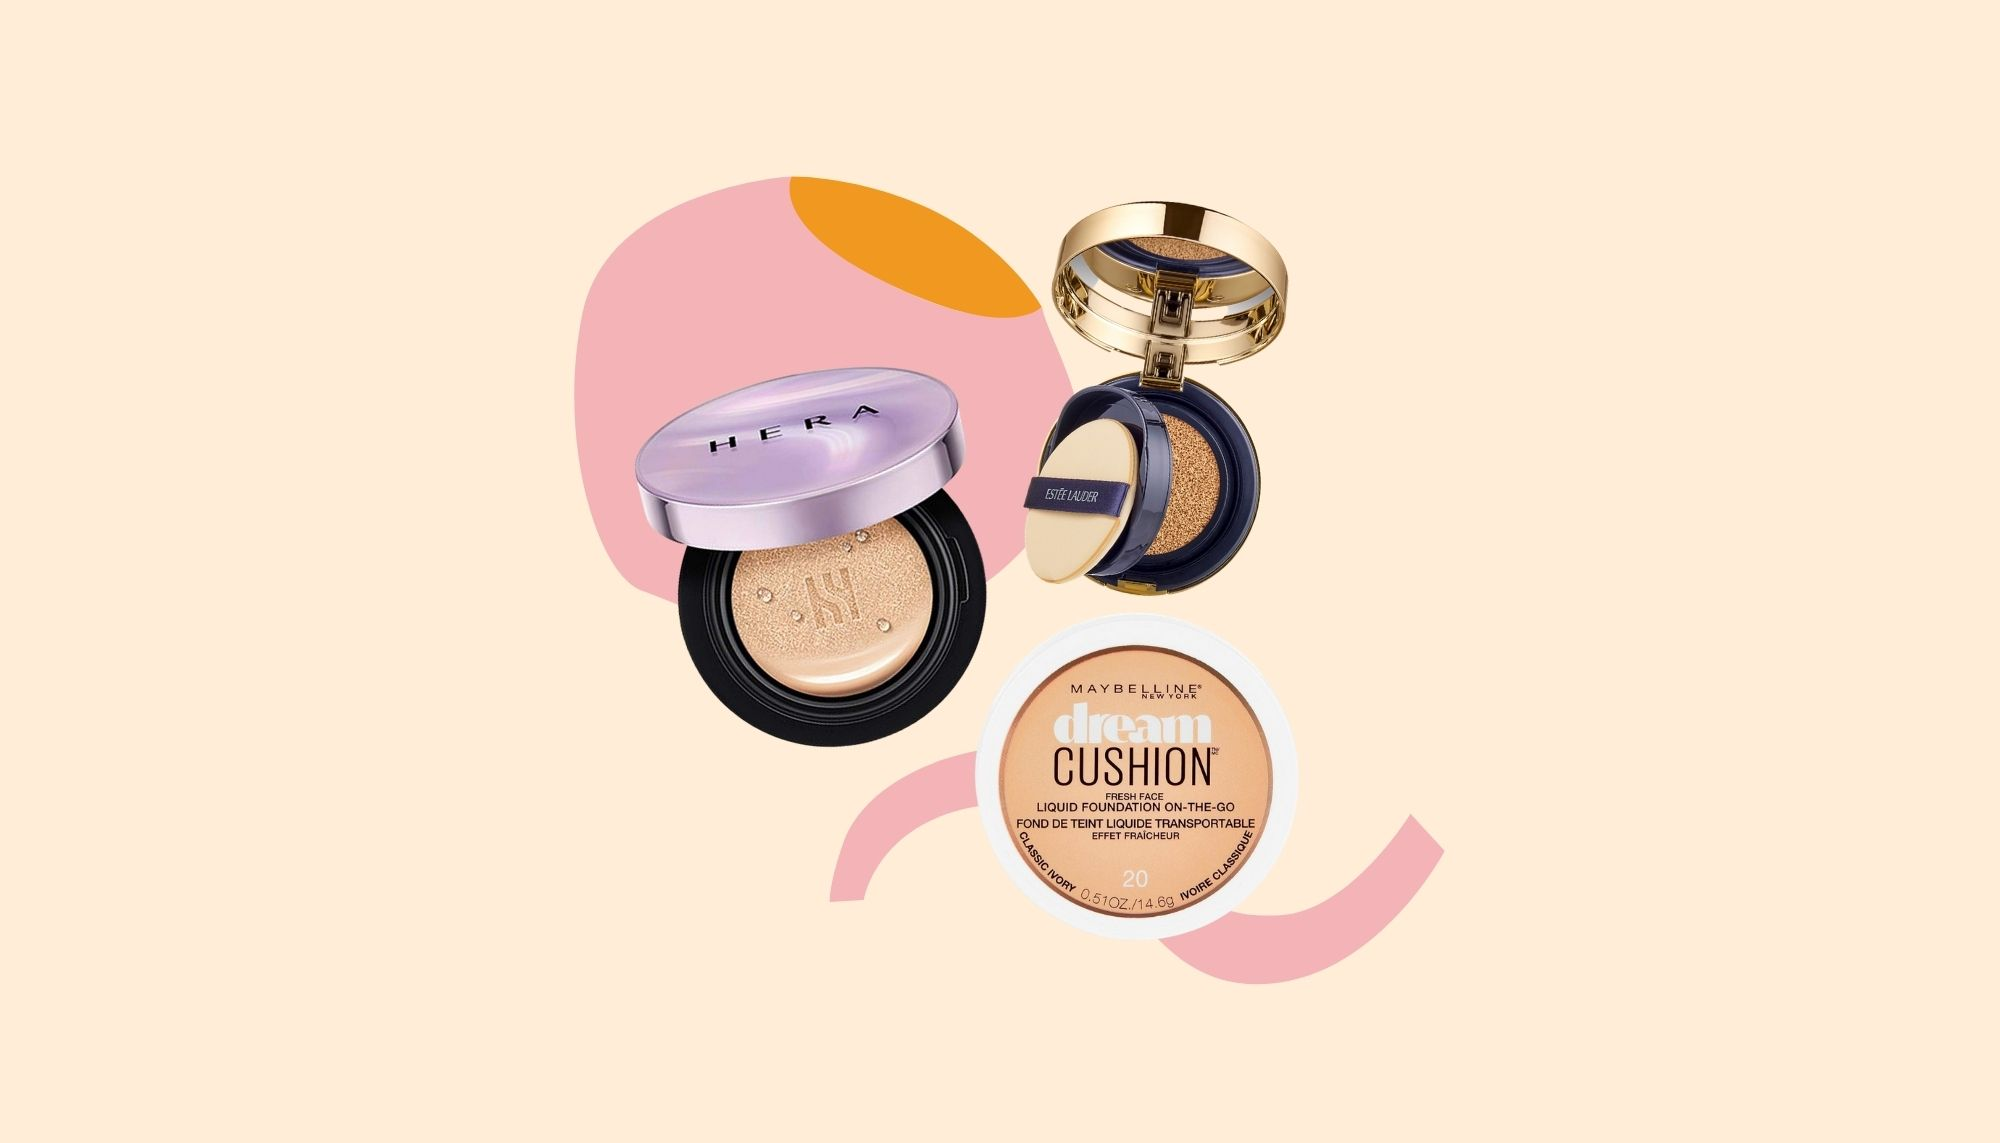 10 Best Cushion Foundations For Your Skin Type